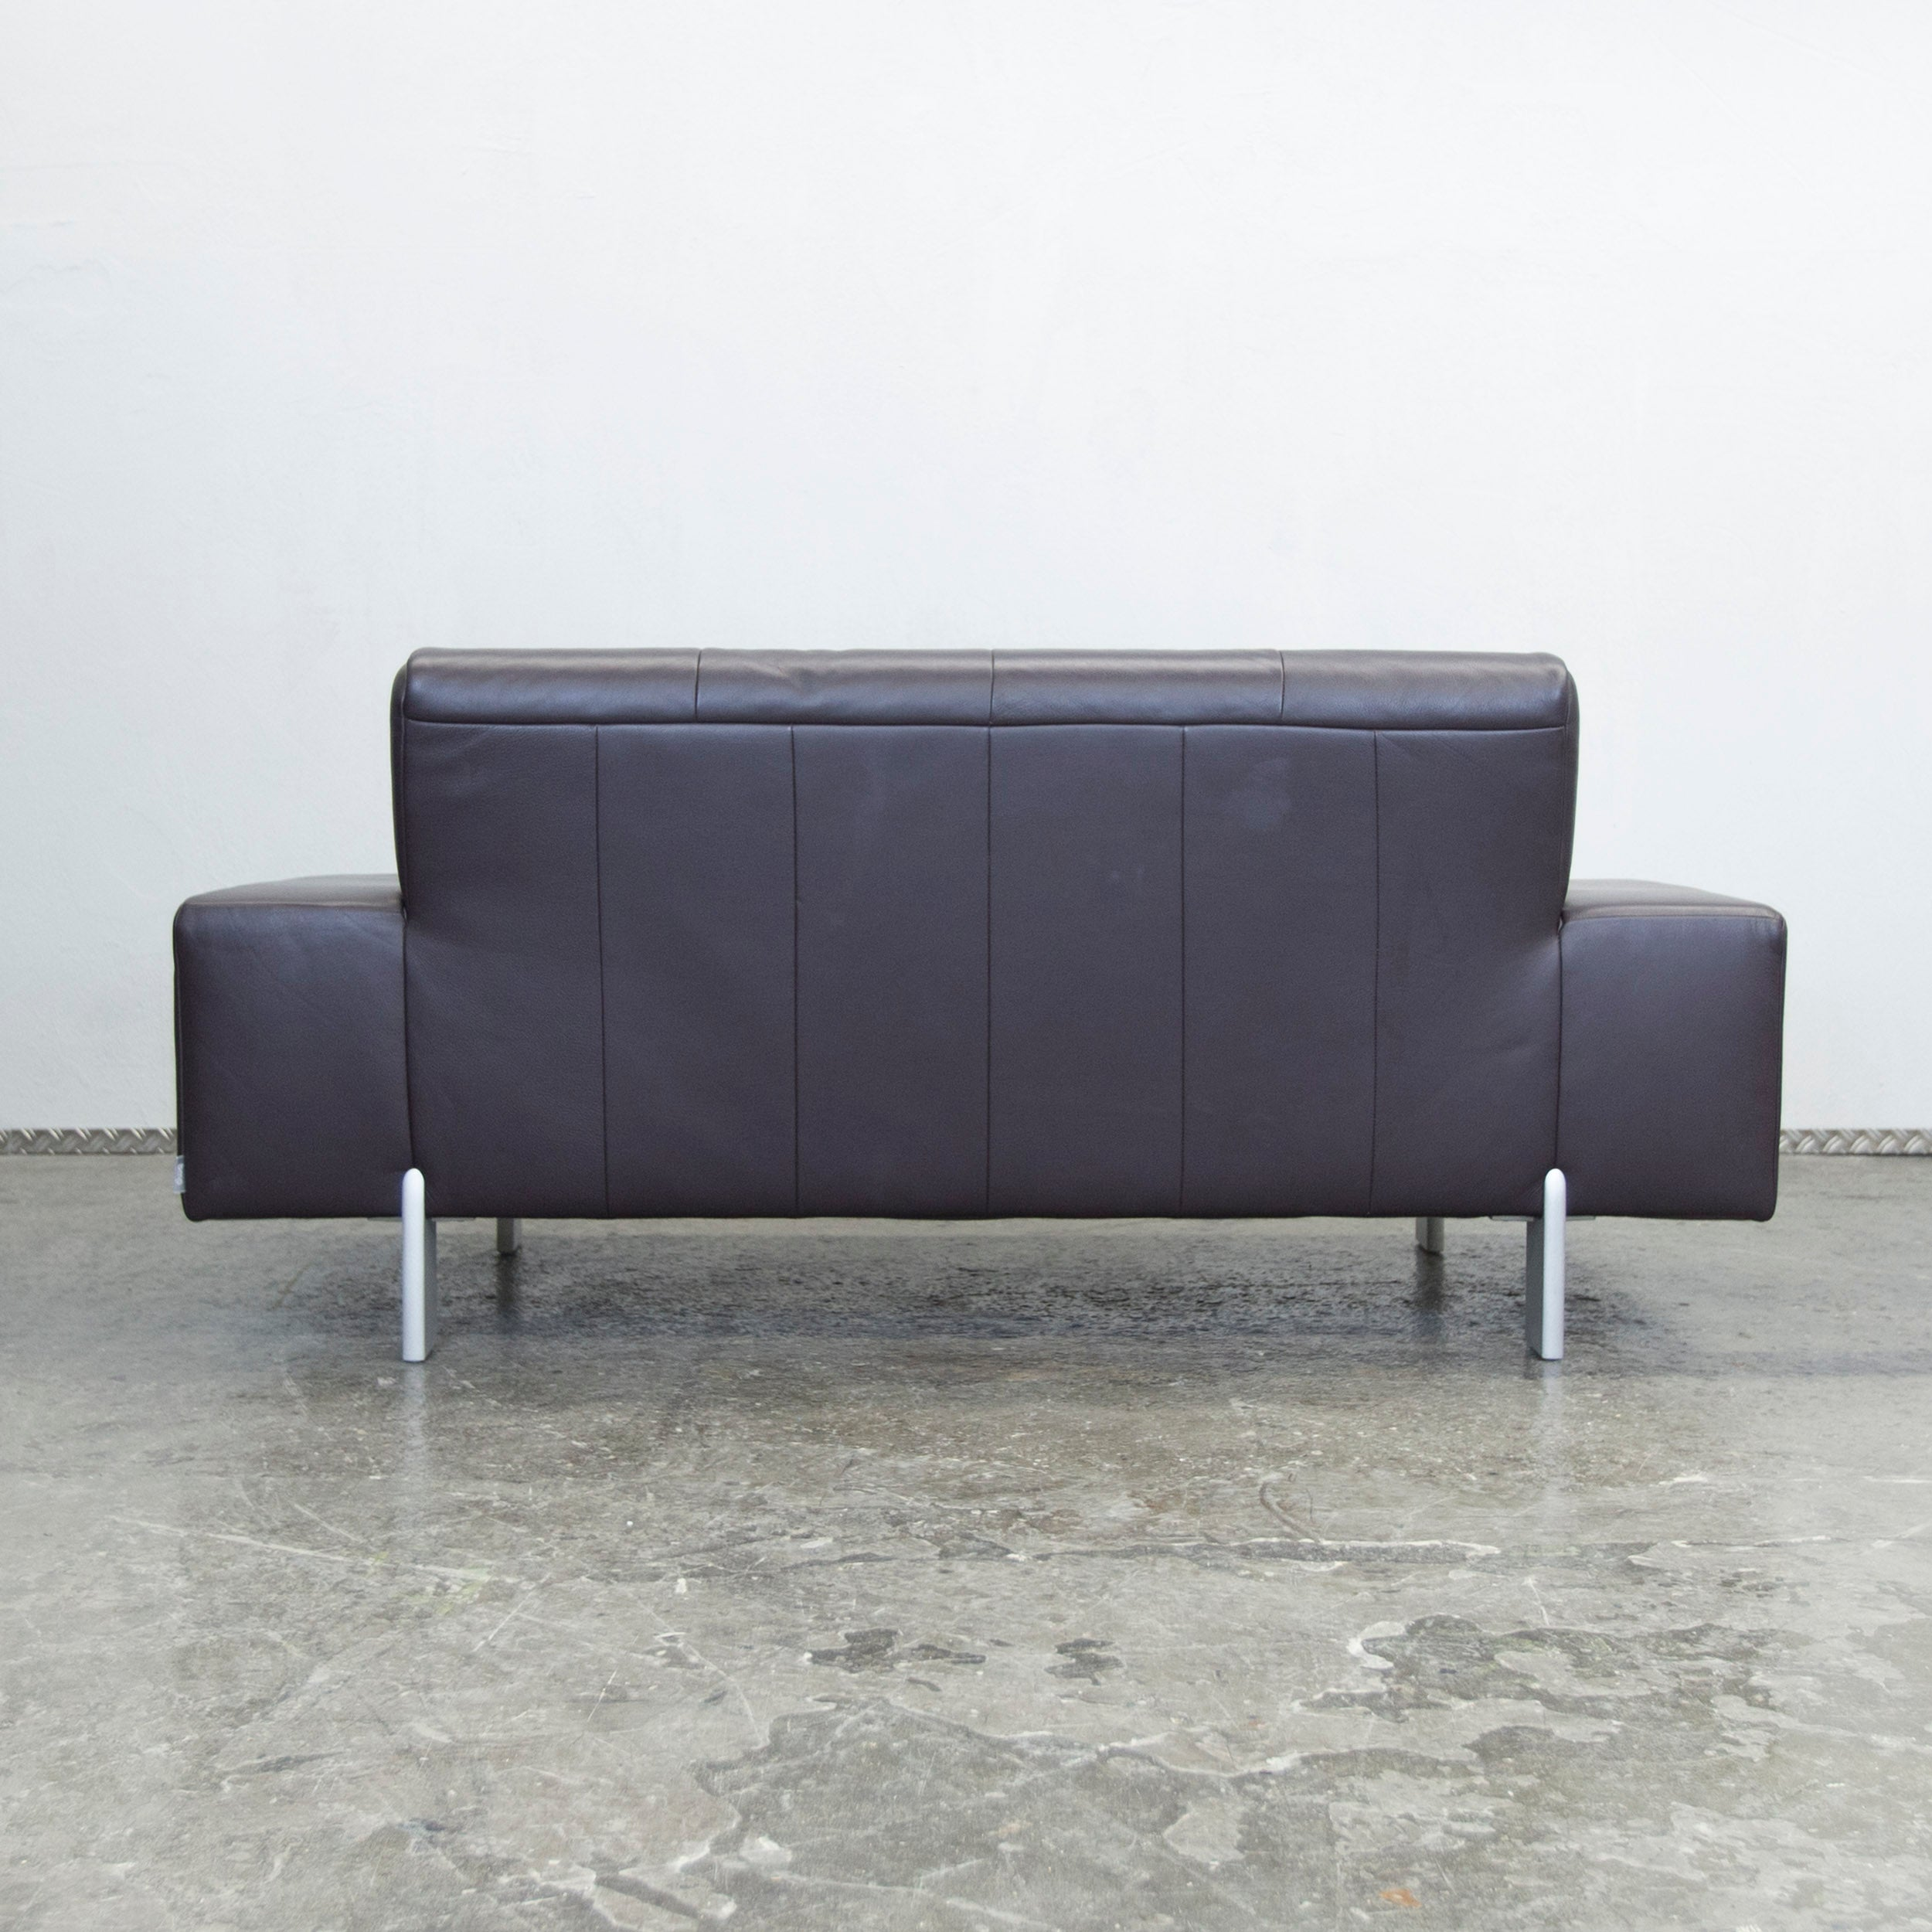 Benz Couch Bmp Rolf Benz Designer Leather Sofa Aubergine Lilac Two Seat Couch Modern